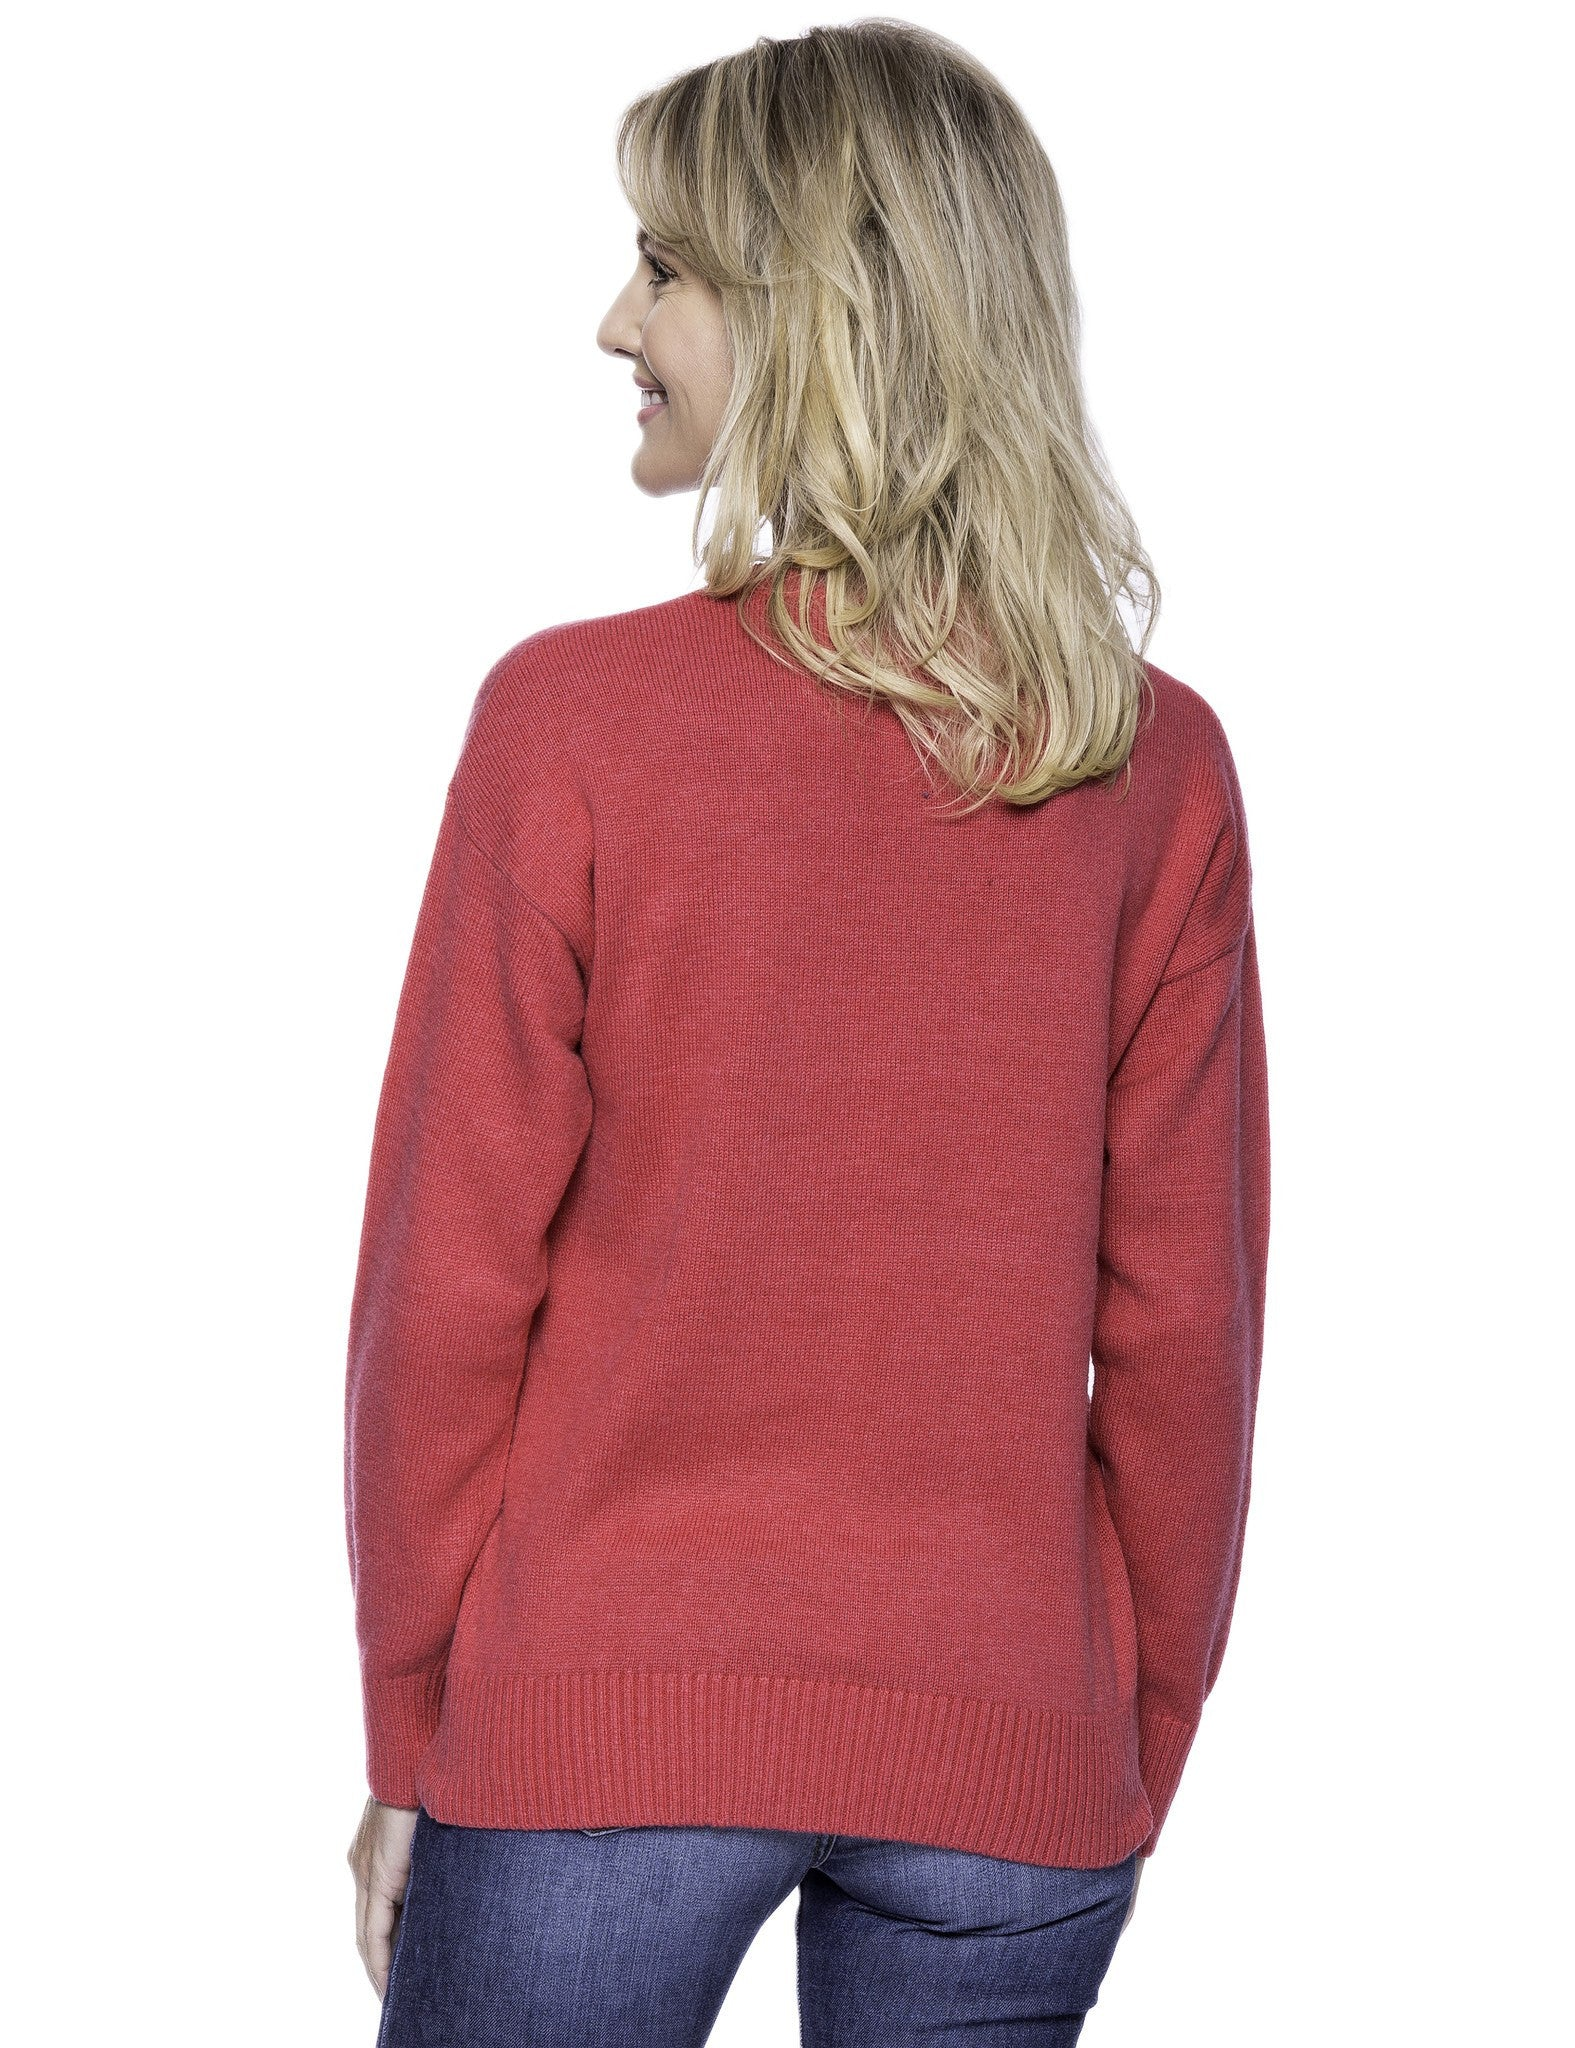 Tocco Reale Women's Cashmere Blend Crew Neck Sweater with Drop Shoulder - Fuchsia